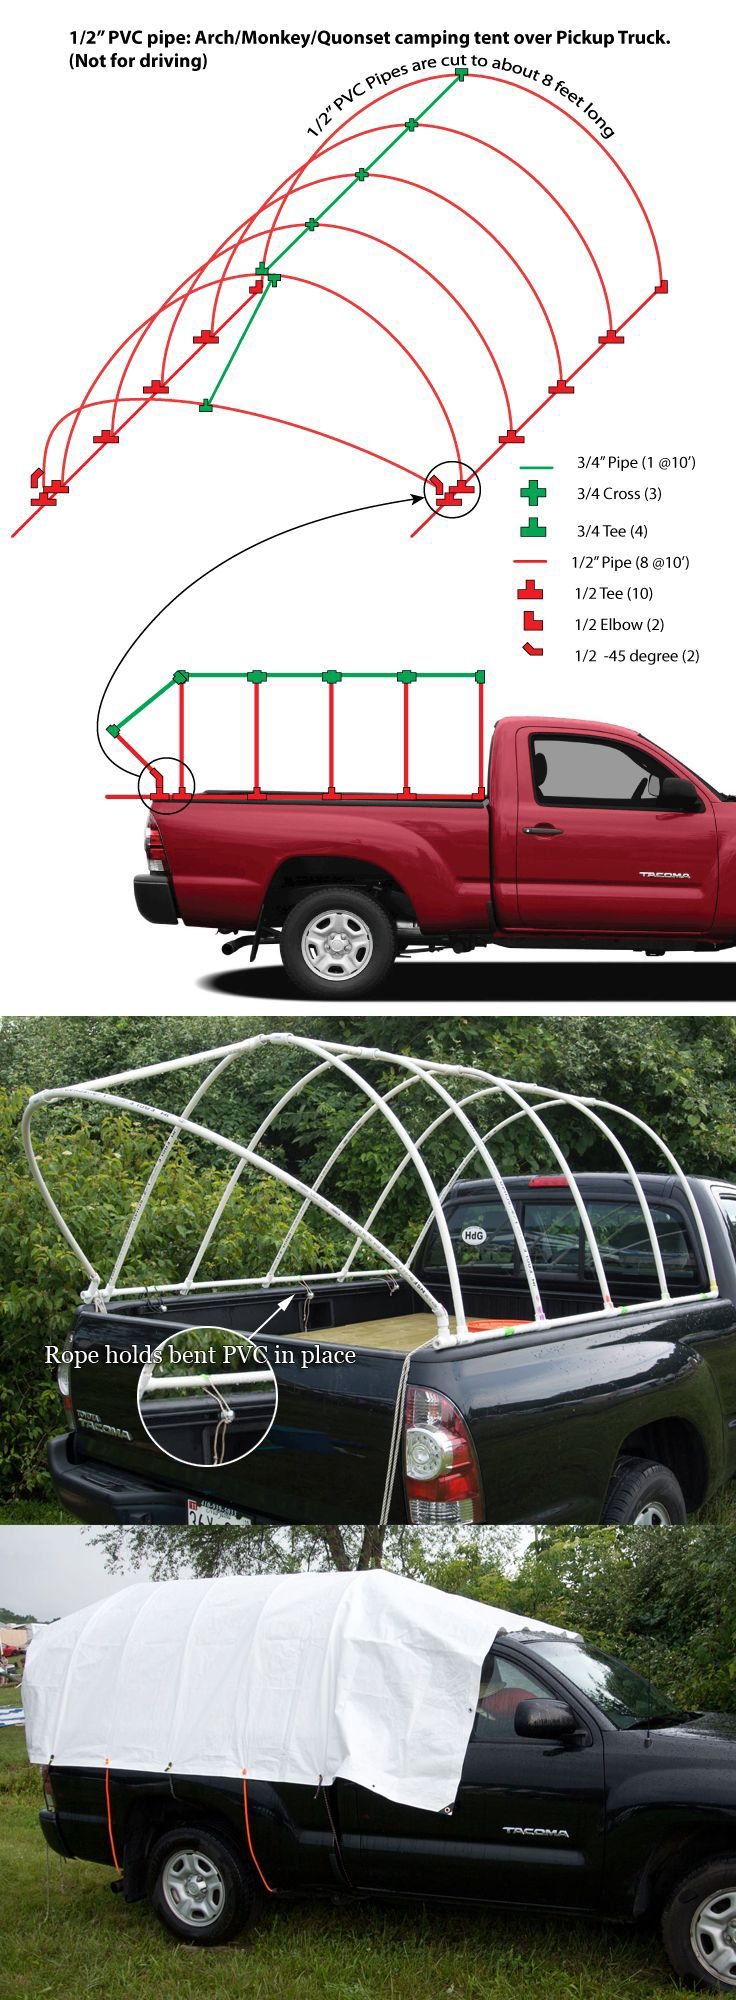 pvc pipe truck tent monkey hut quonset hut diy camping tent over